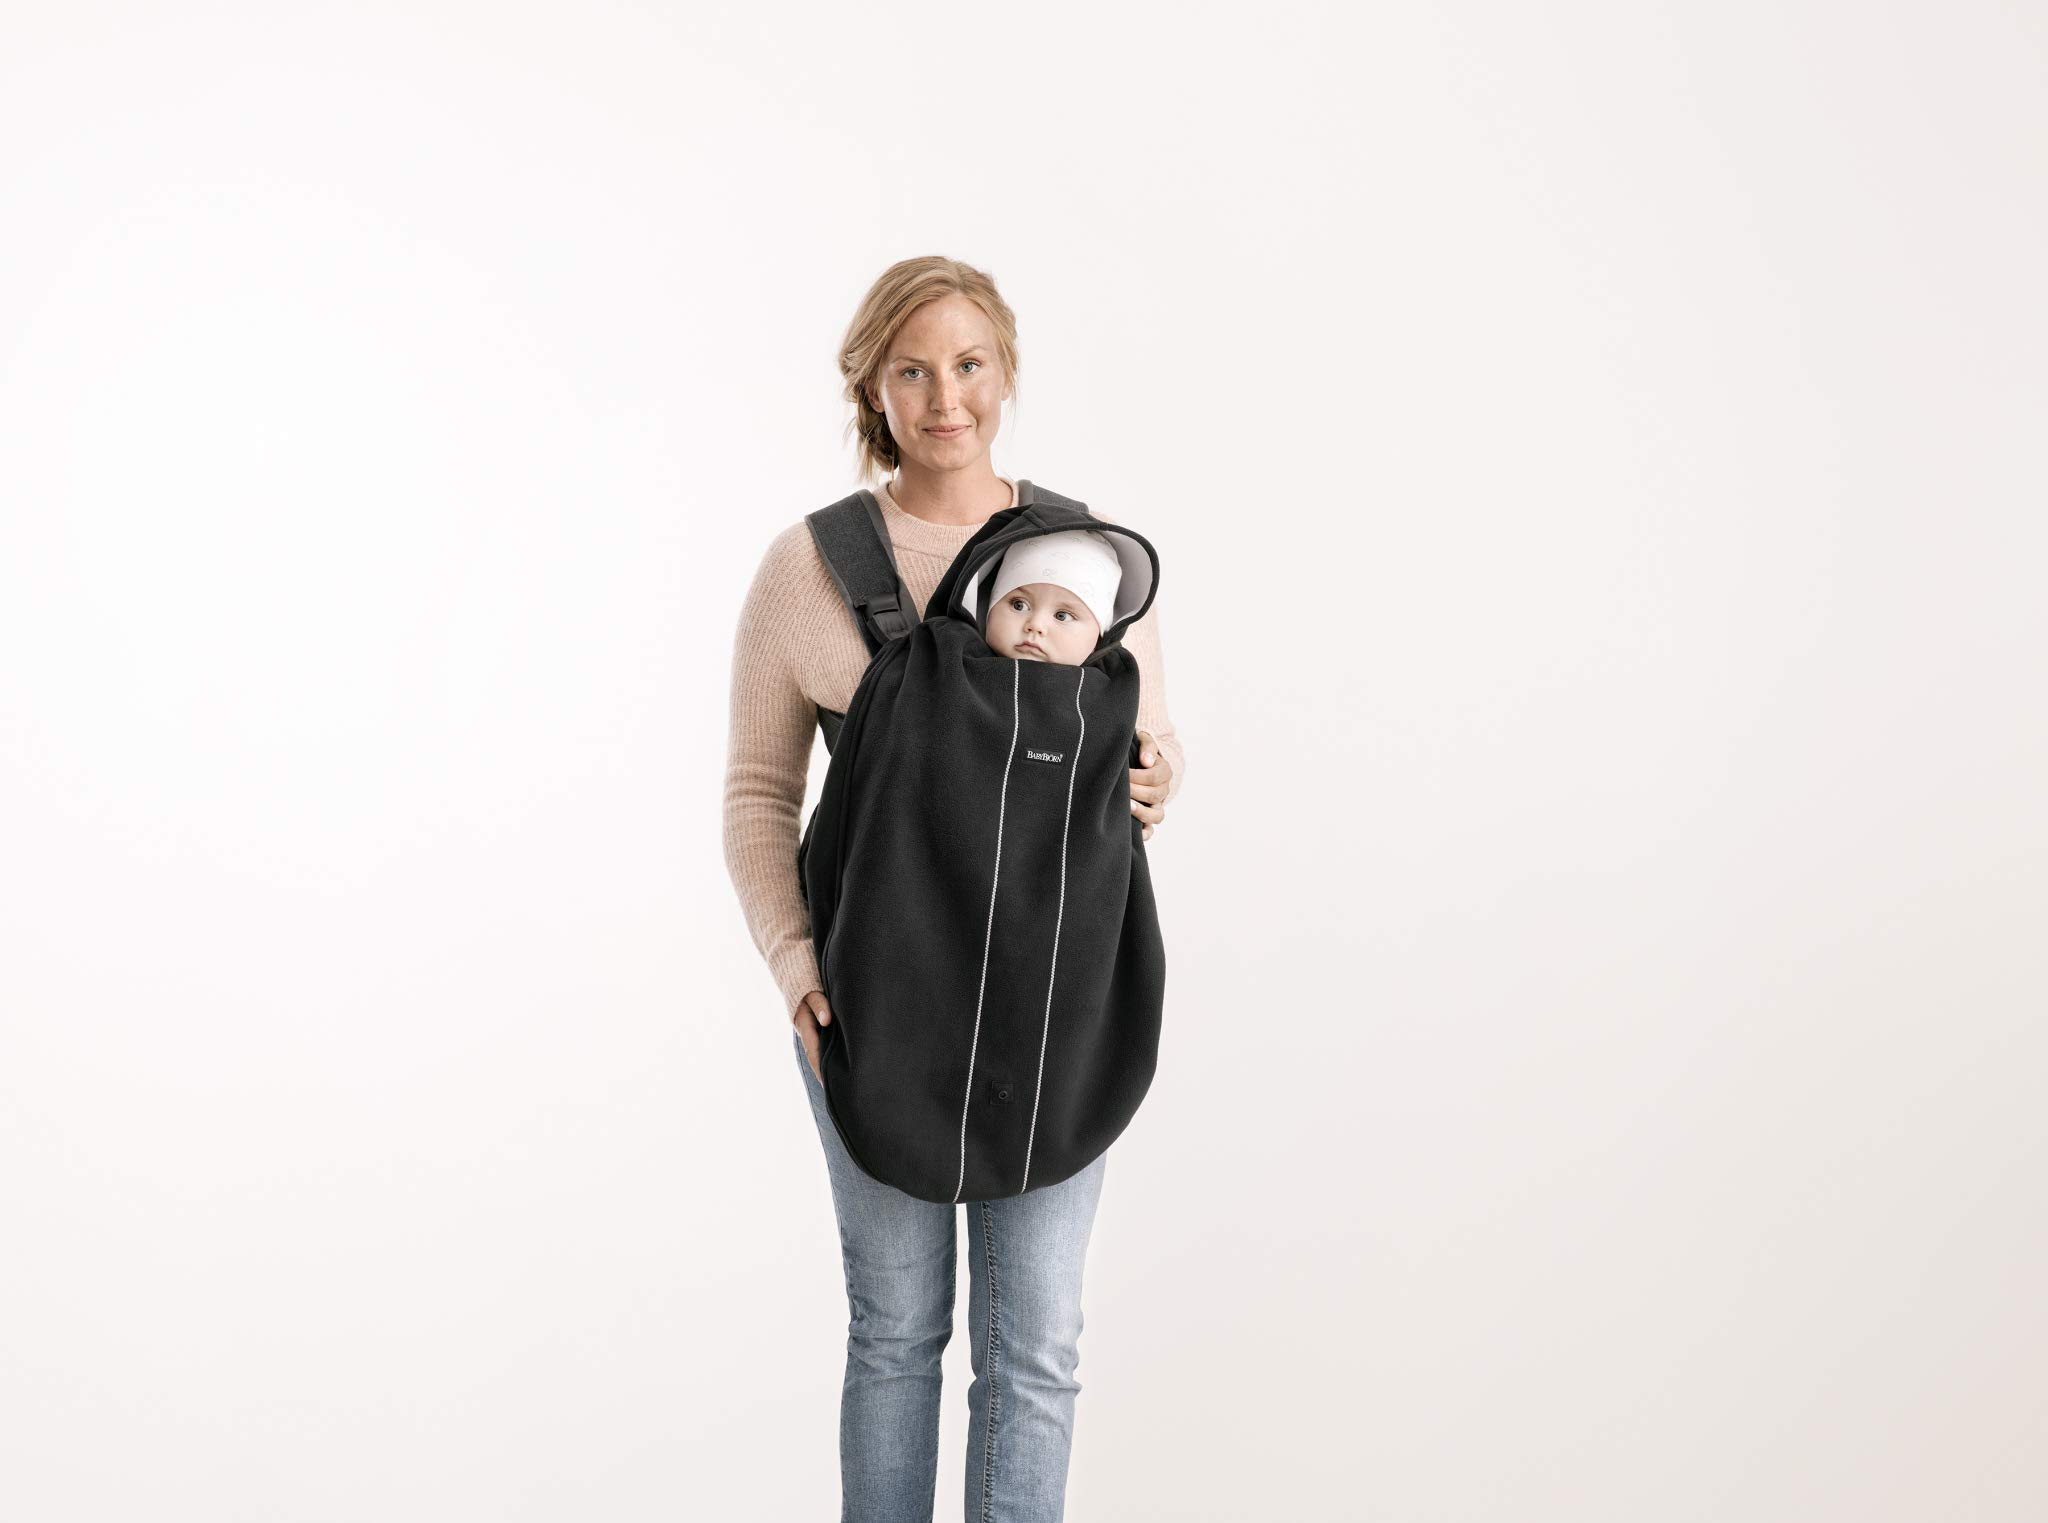 BABYBJÖRN Cover for Baby Carrier, Black, 0.3 kg Baby Bjorn Keeps your child warm and dry in the baby carrier Can be used in both facing-in and front-facing positions Detachable hood 3